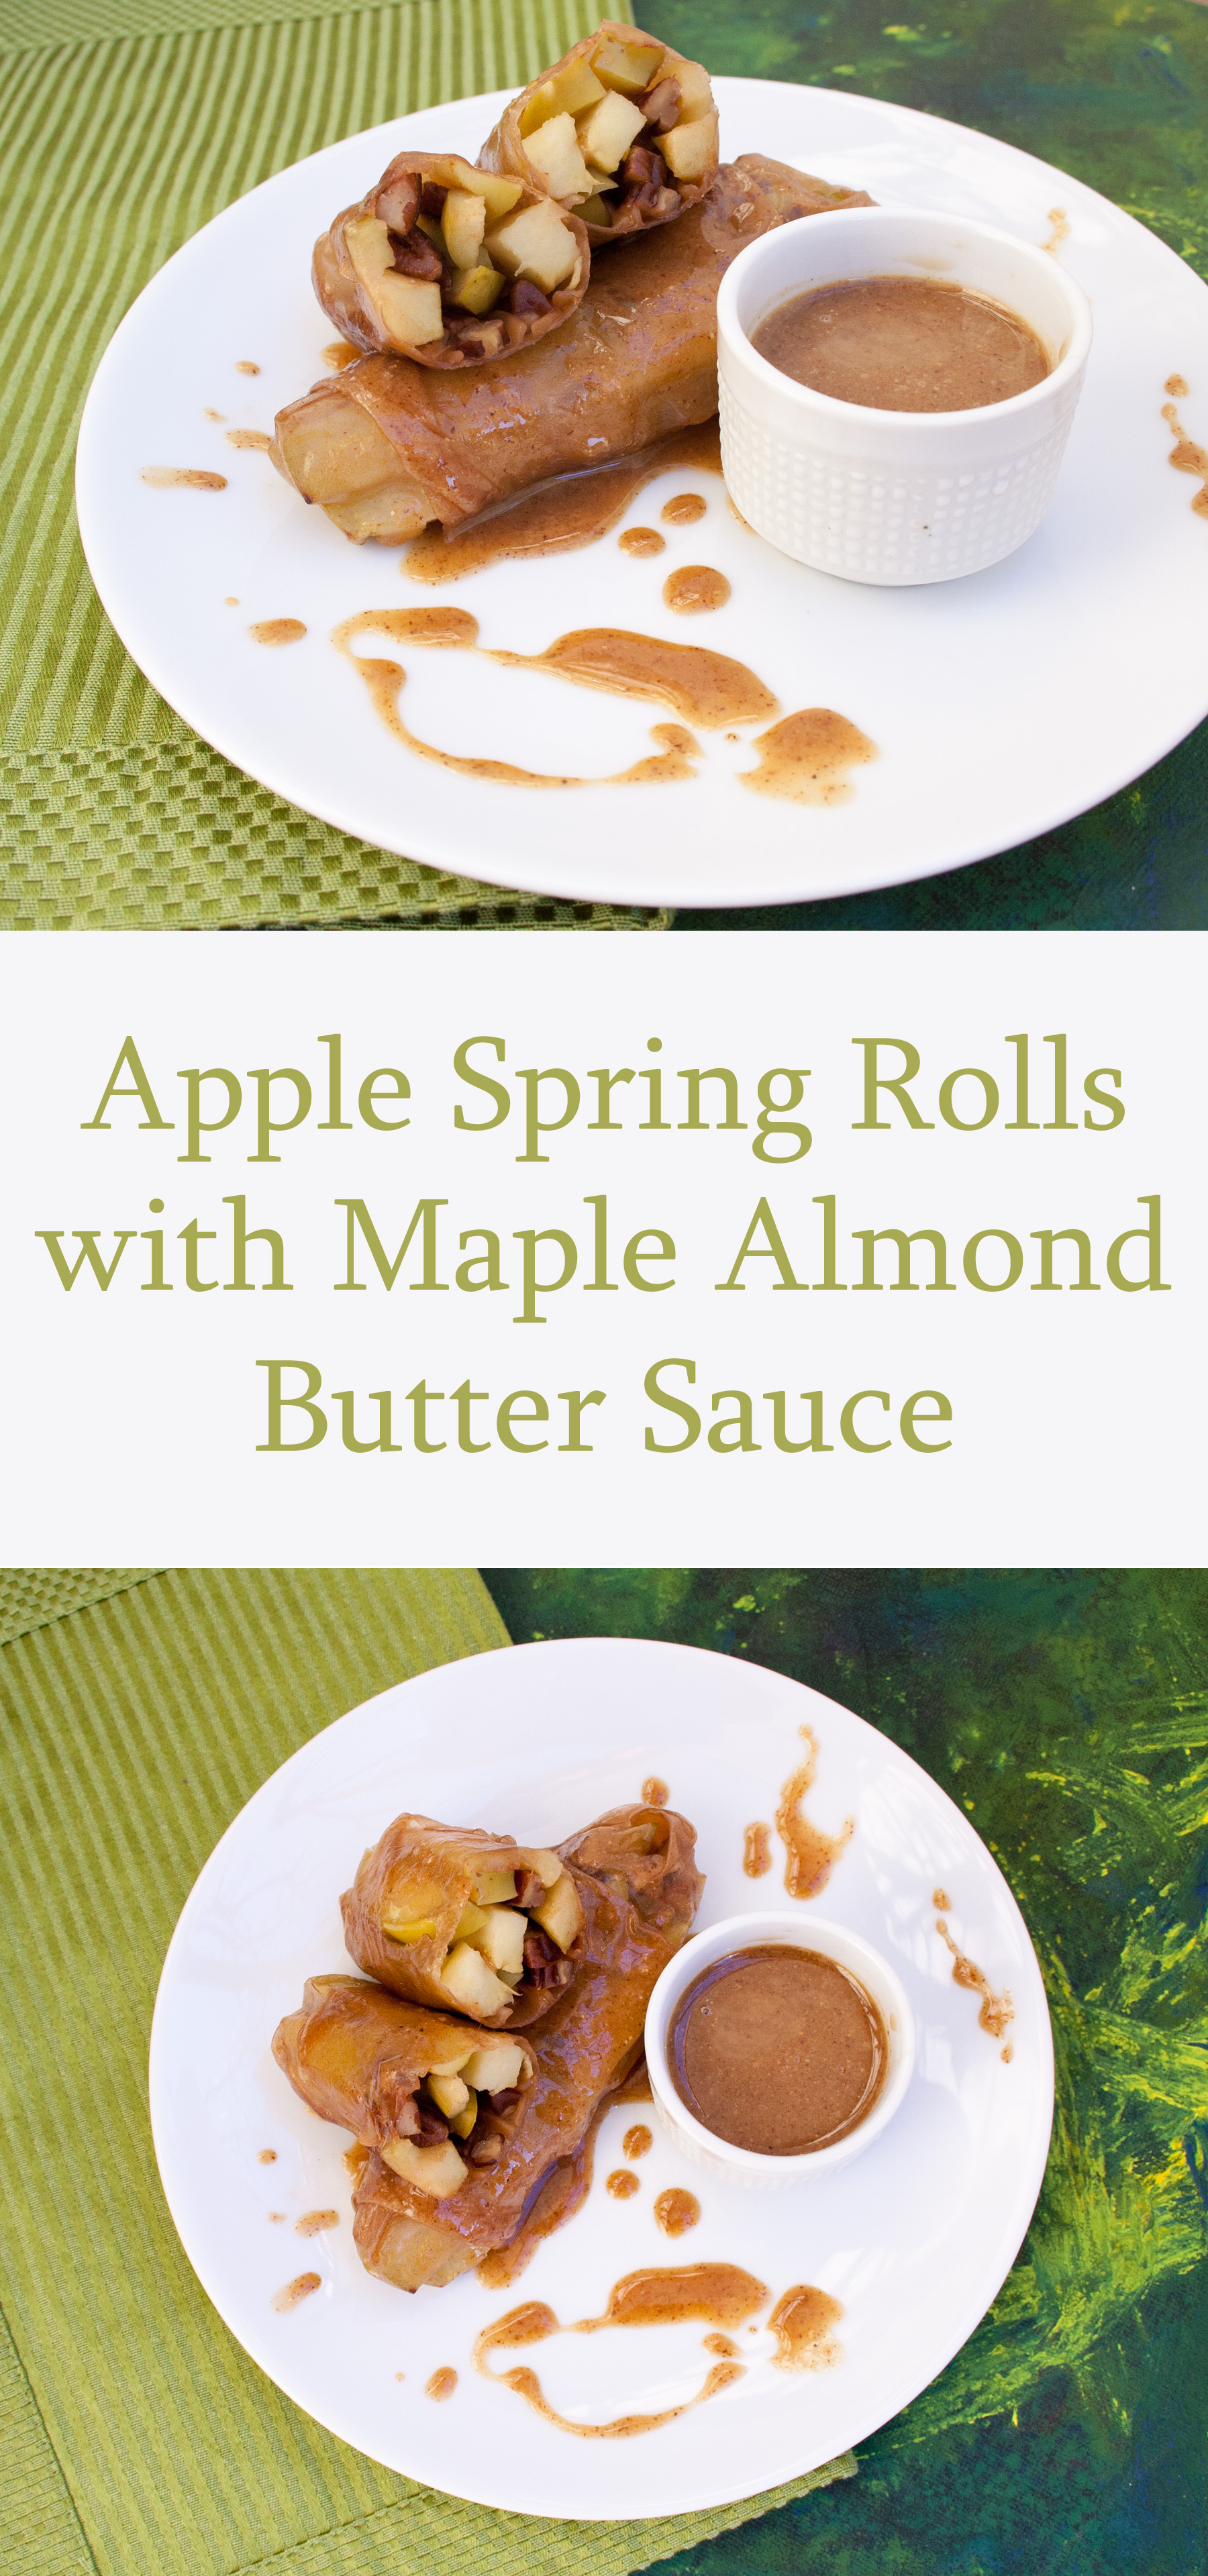 Apple Spring Rolls with Maple Almond Butter Sauce collage photo with text.